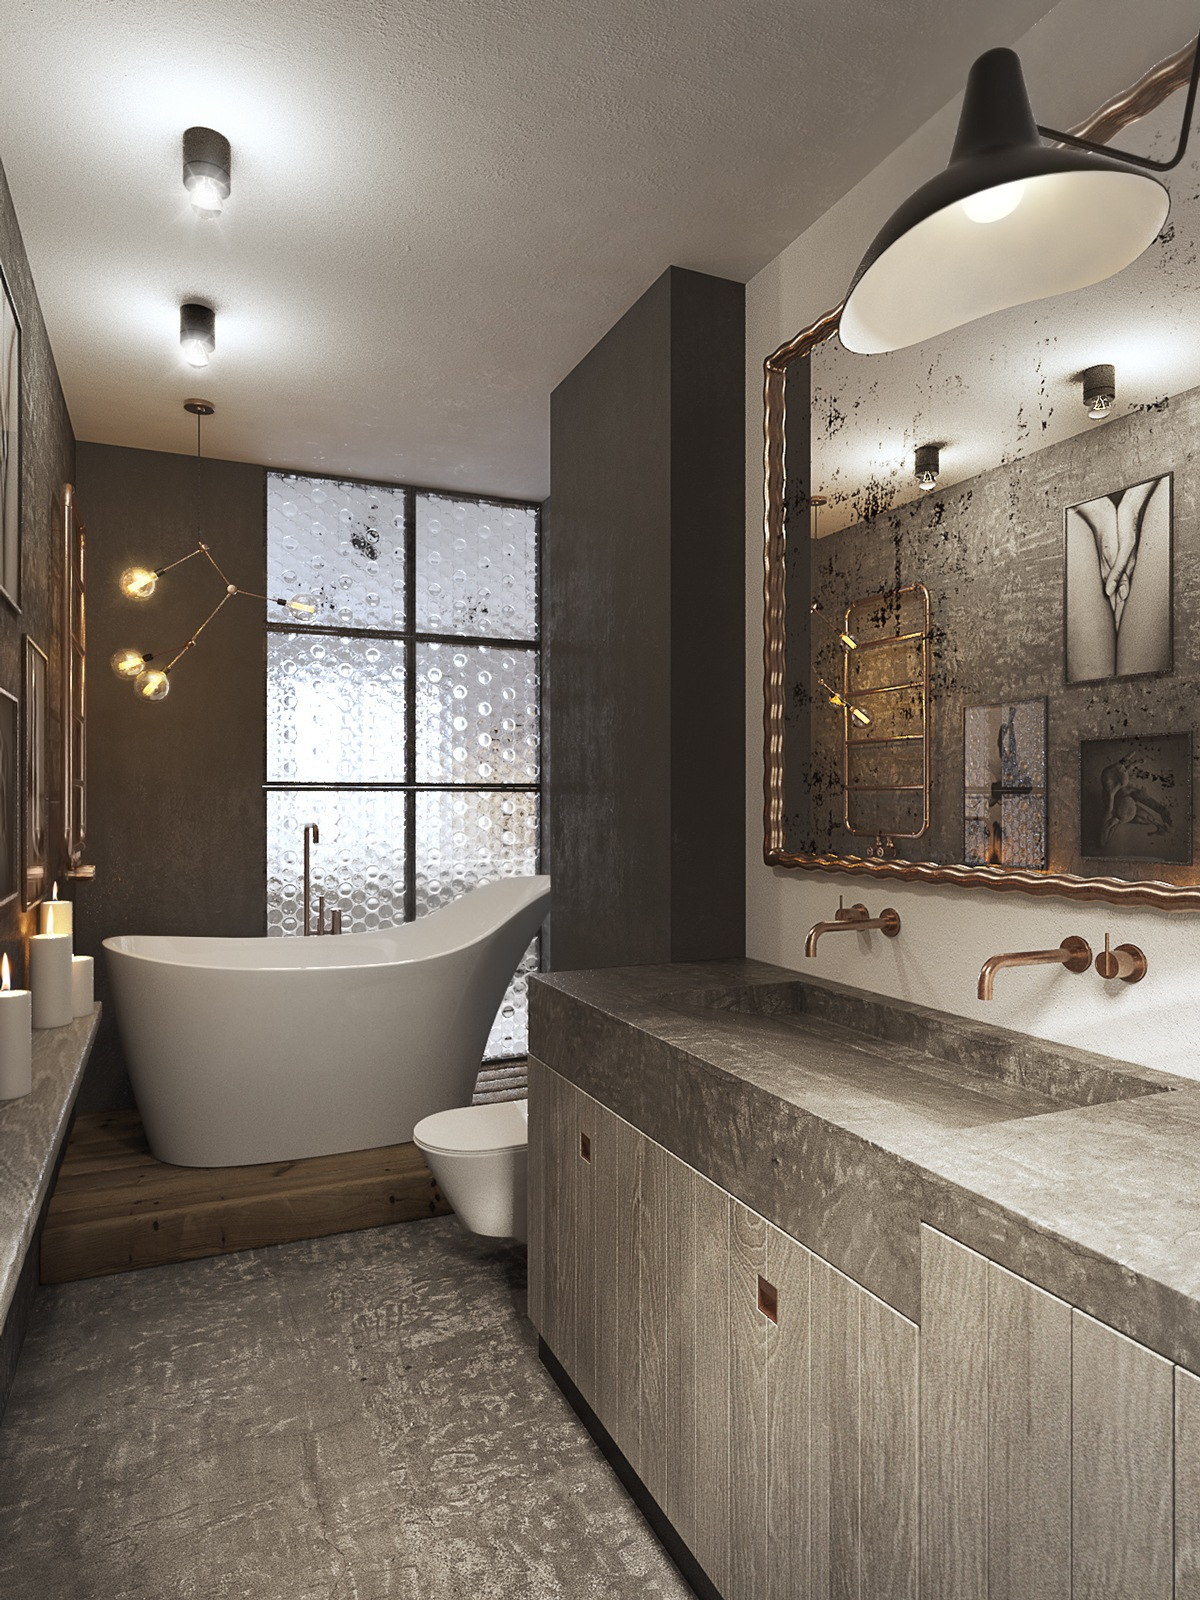 Minimalist bathroom designs looks so trendy with backsplash and wooden accent decoration - Bathroom design studio ...